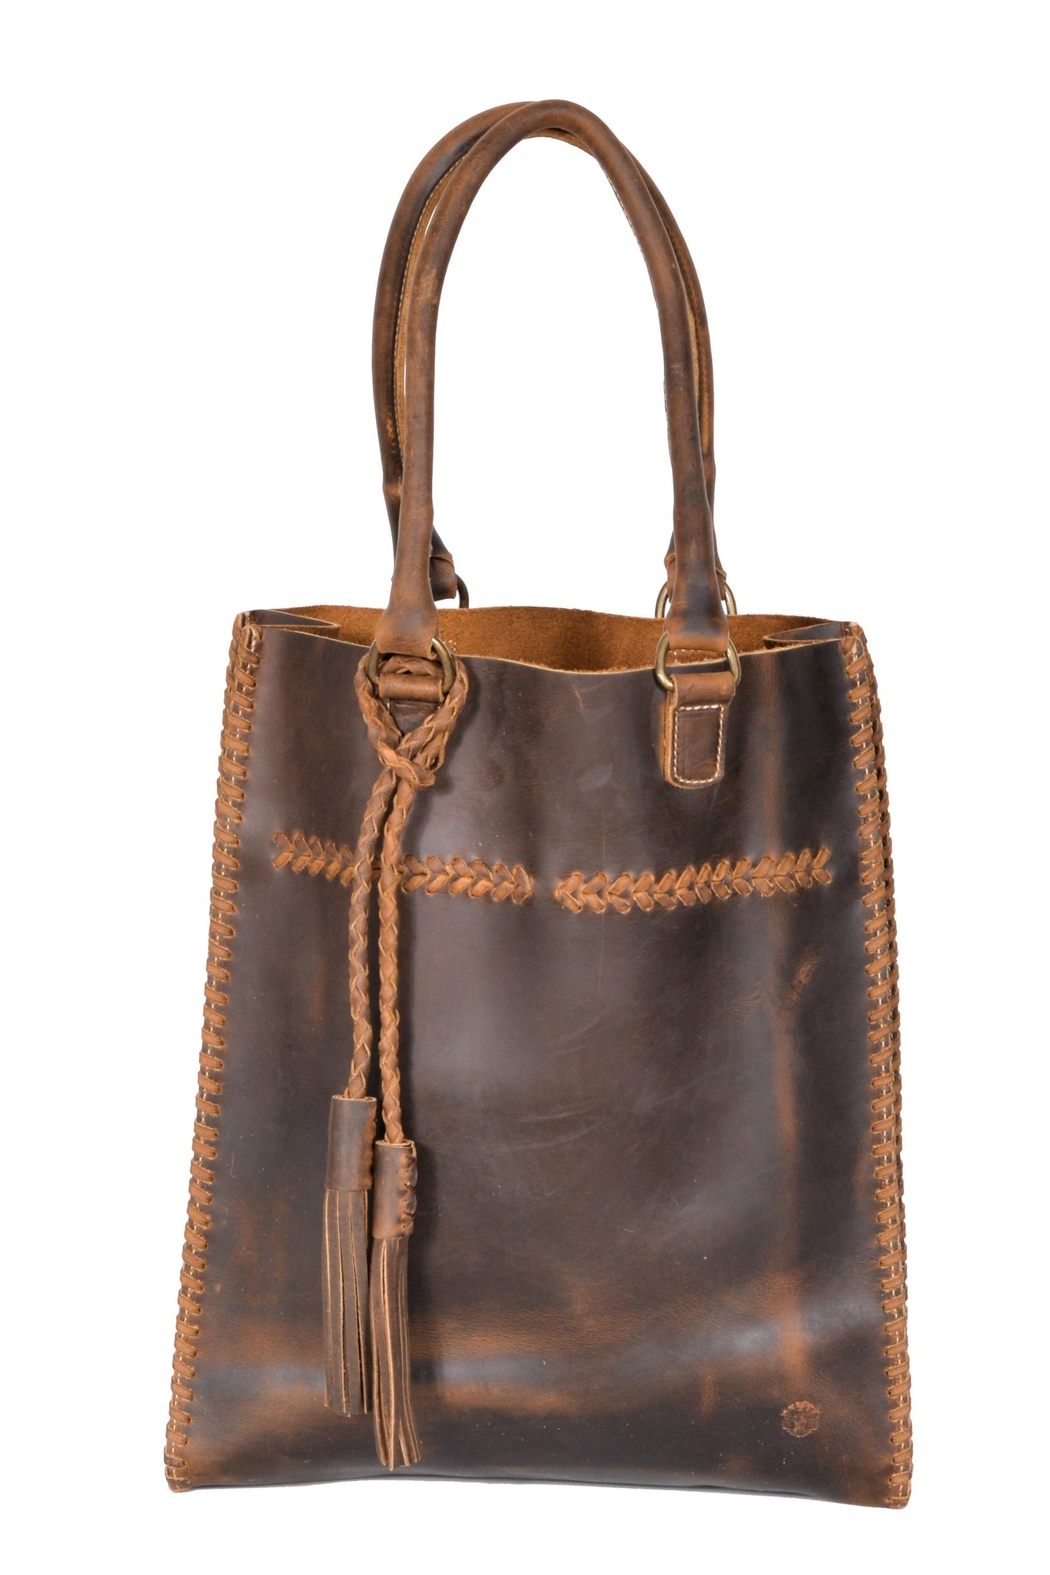 Oak River Company Leather Braided Tote - Main Image